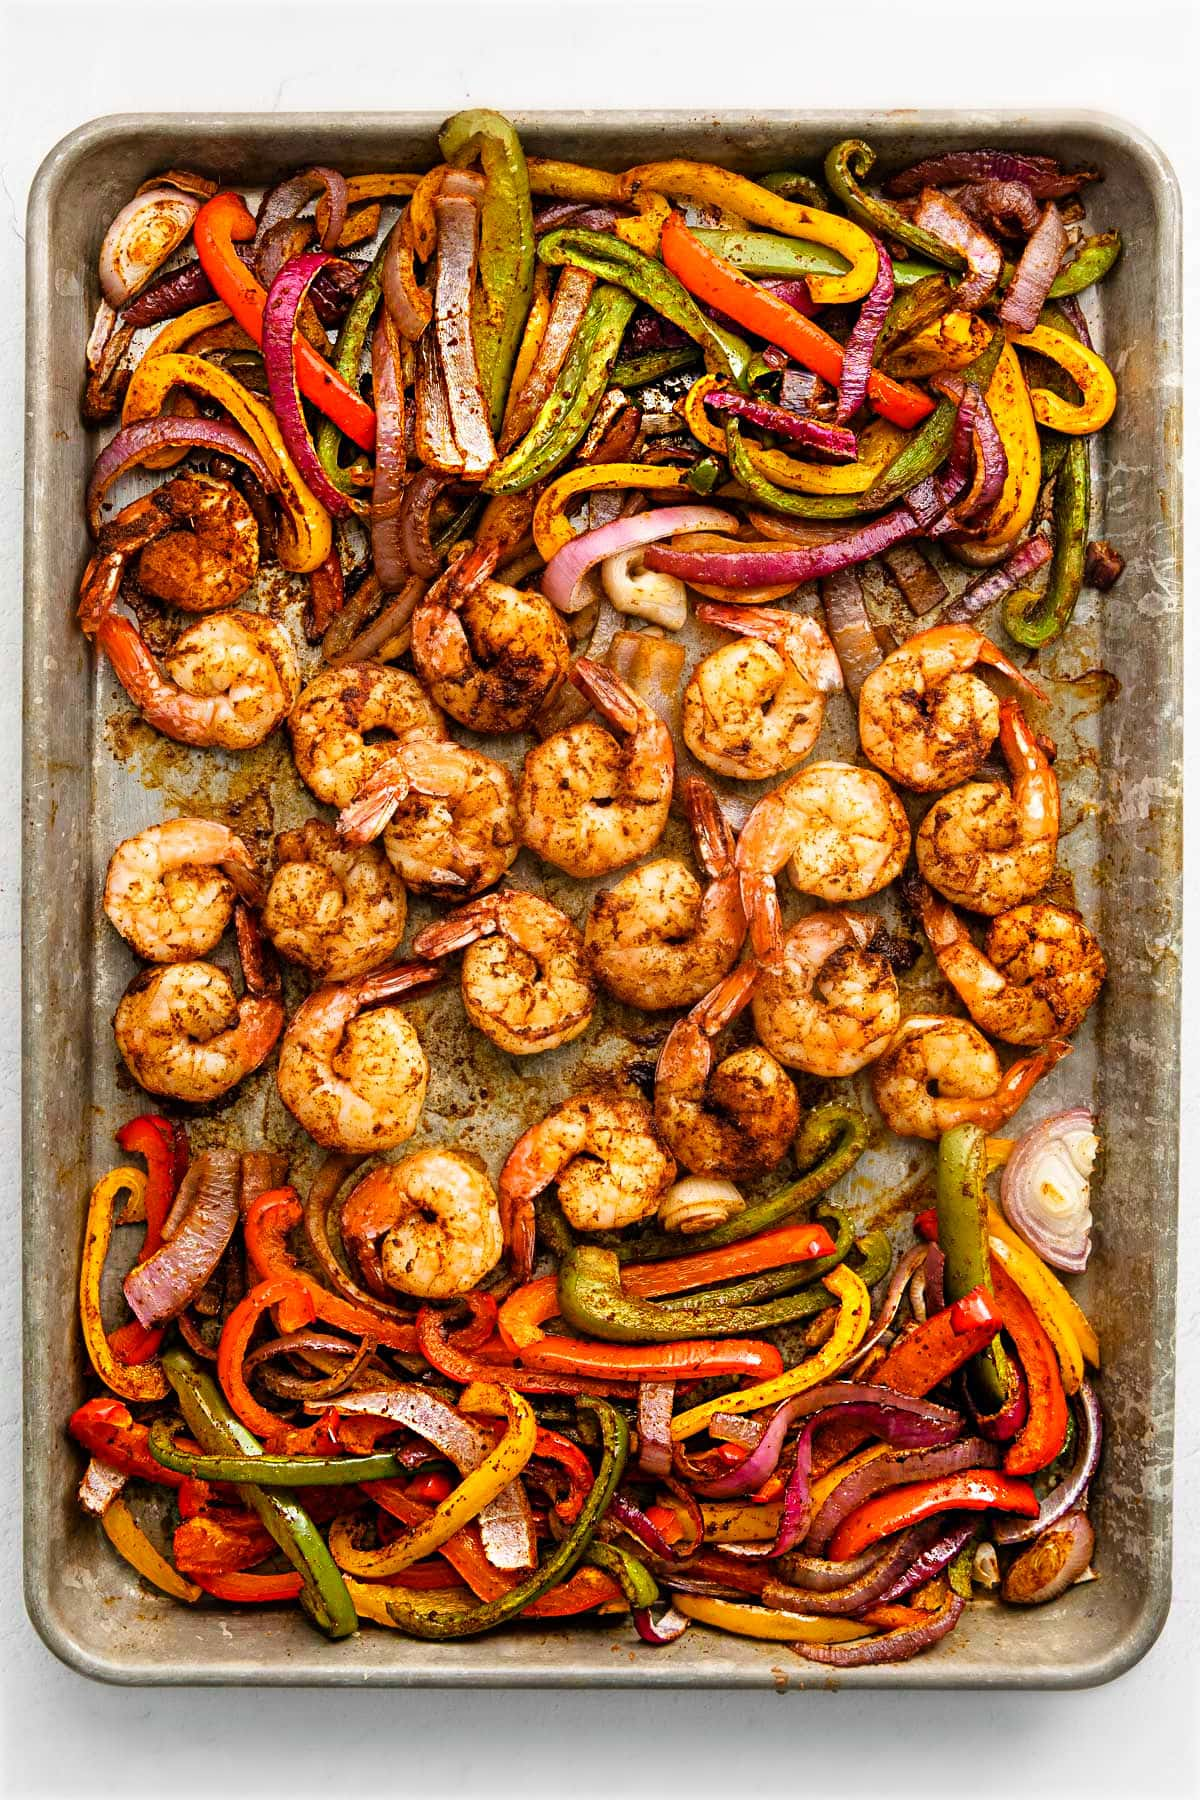 shrimp fajitas on a sheet pan with shrimp in the center and veggies on the sides.